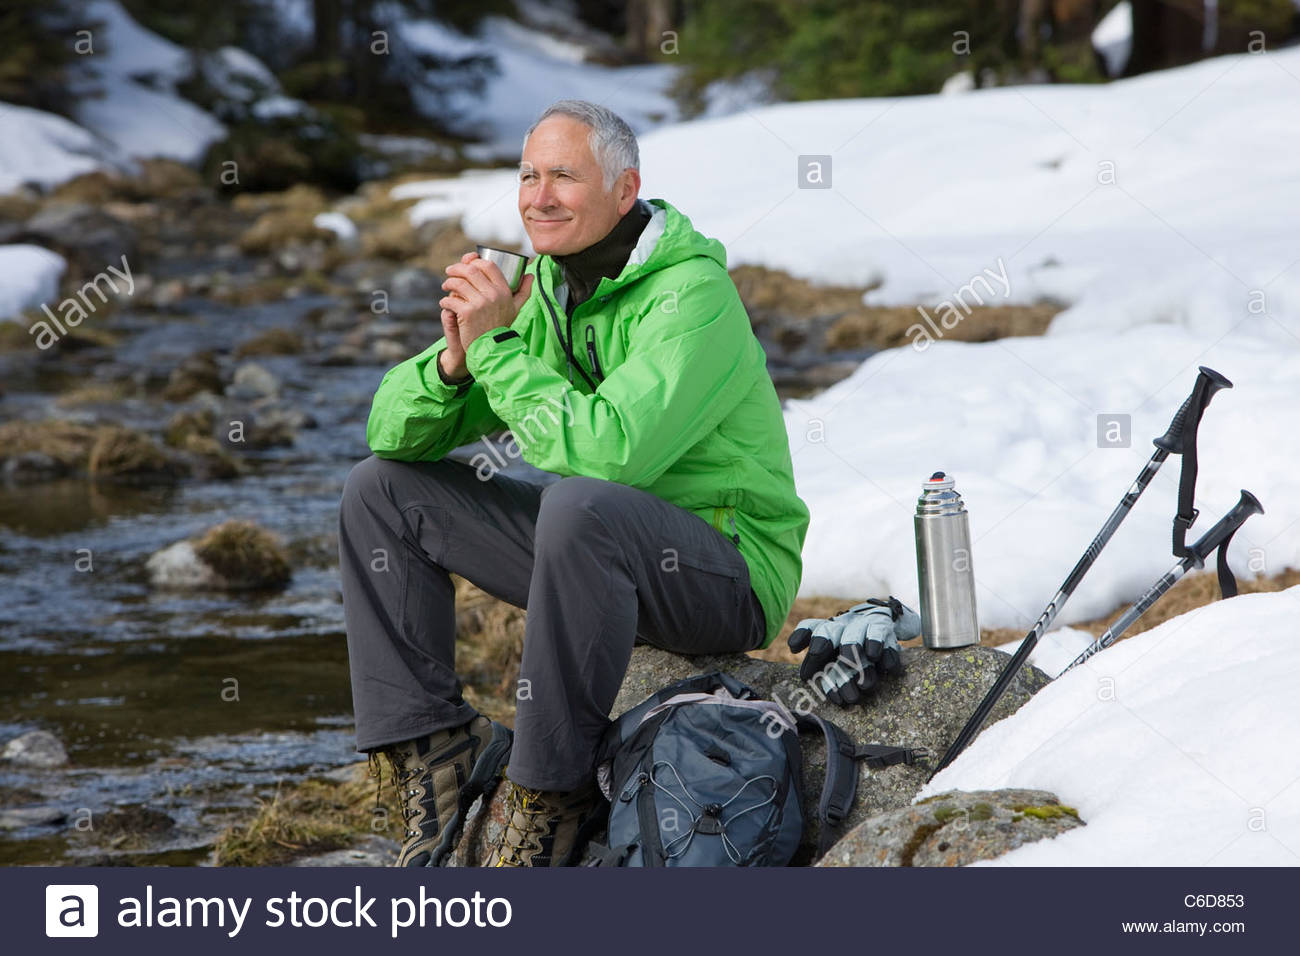 Smiling man with backpack and ski poles sitting at edge of stream in snowy woods - Stock Image